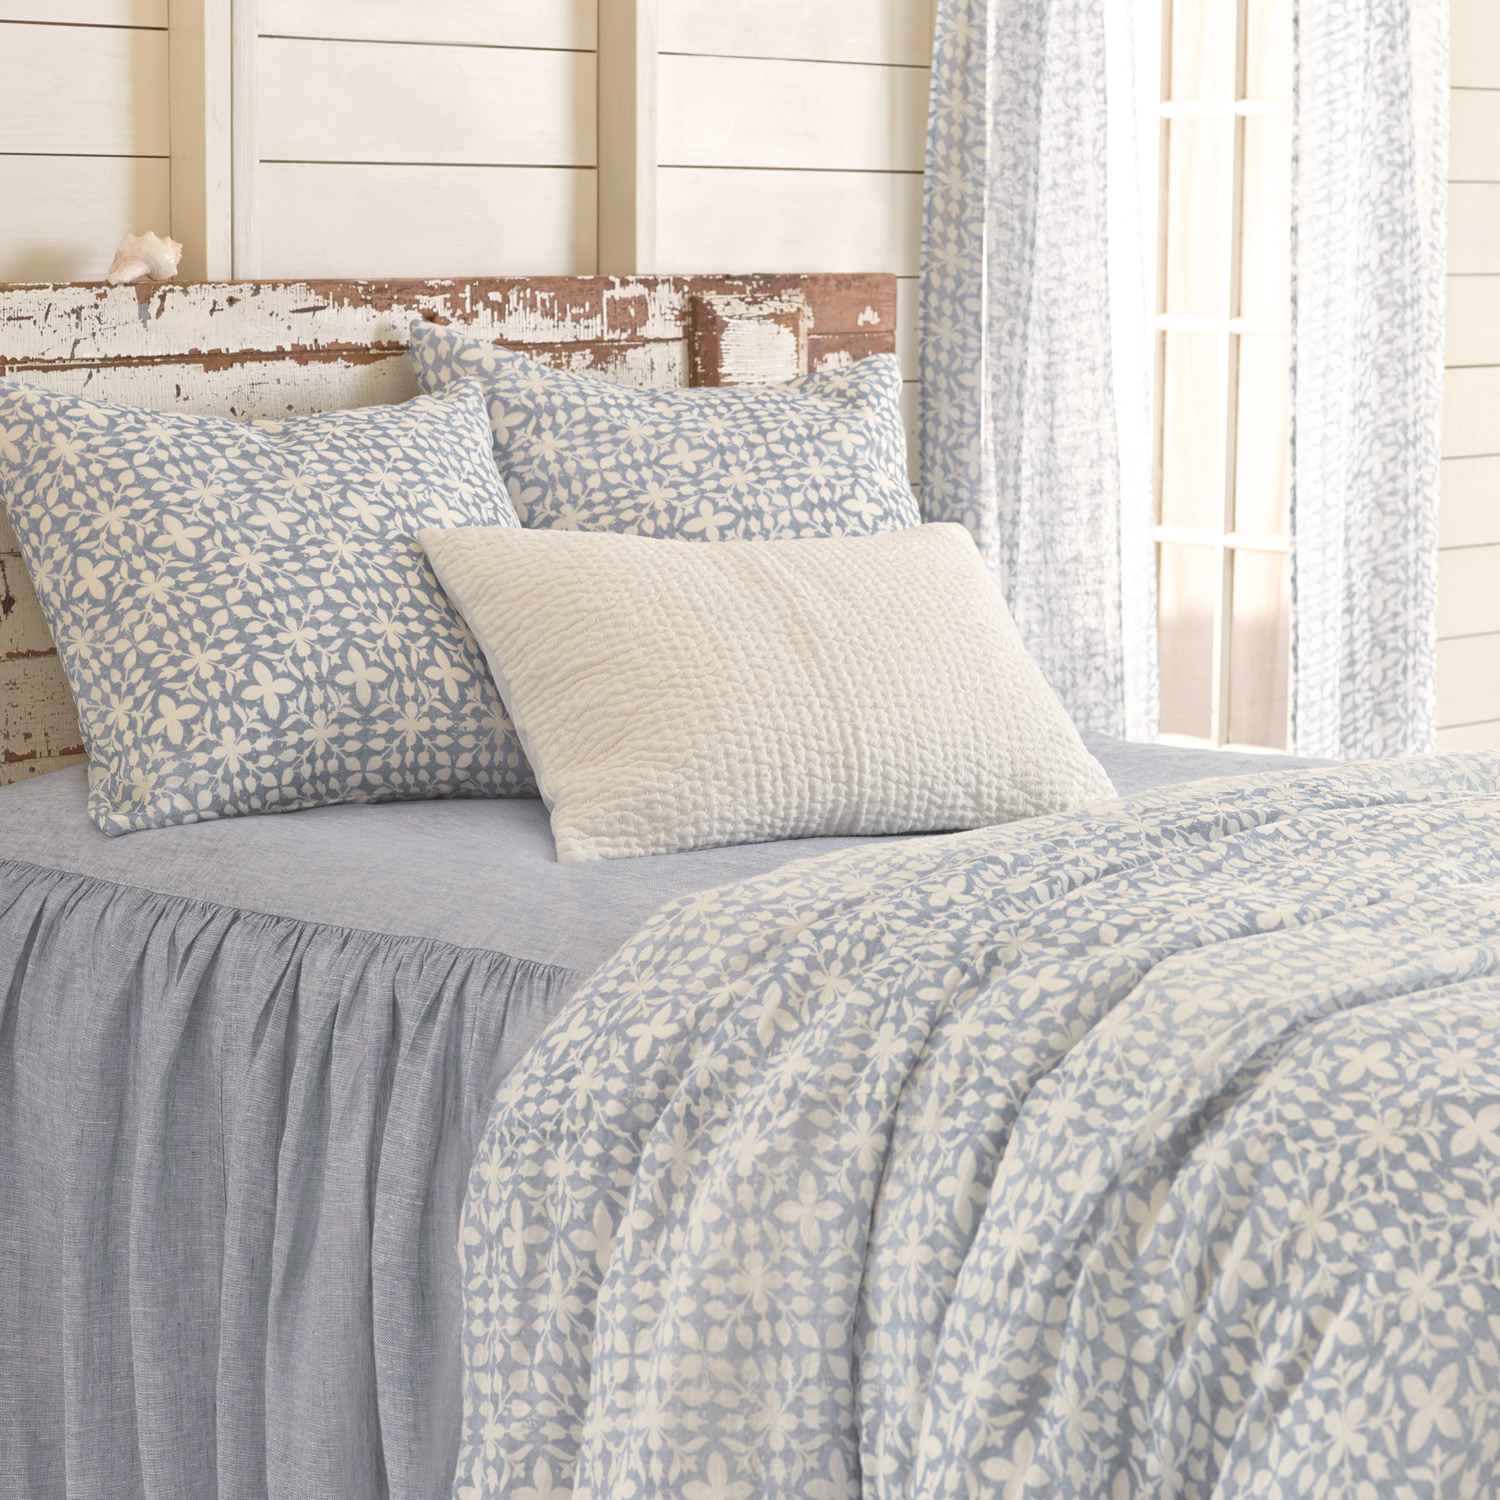 Charming Pine Cone Hill Veena Blue Duvet Cover For Bed Ideas